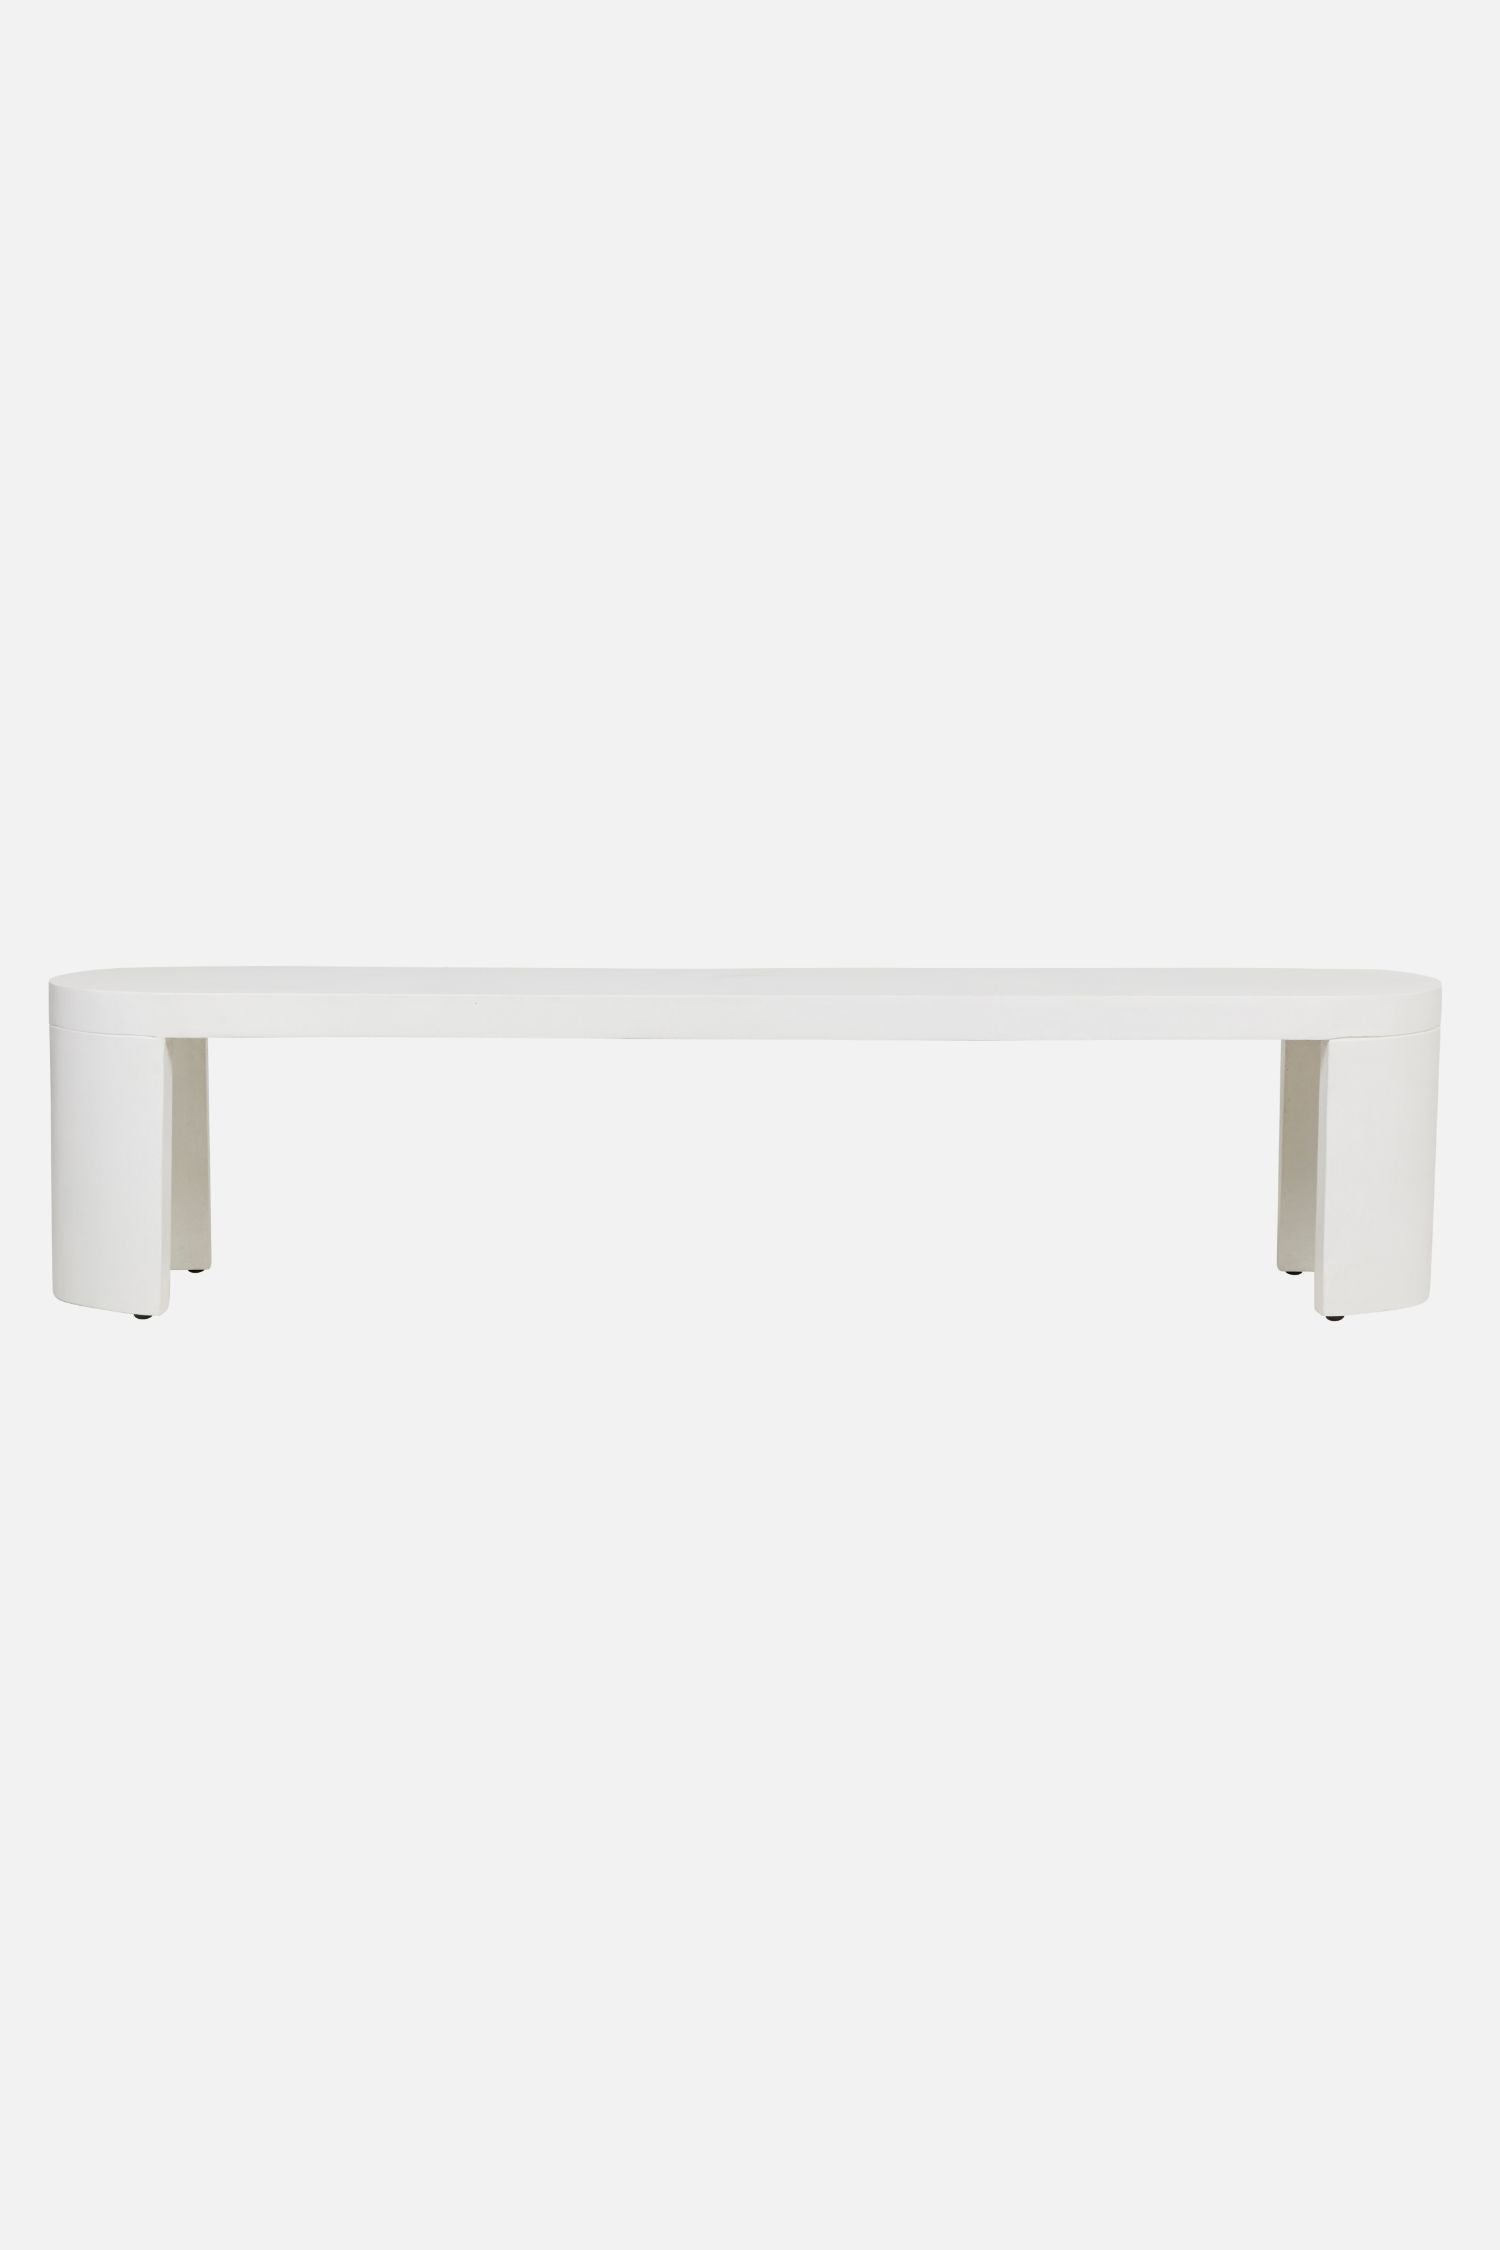 new chums outdoor concrete bench off white